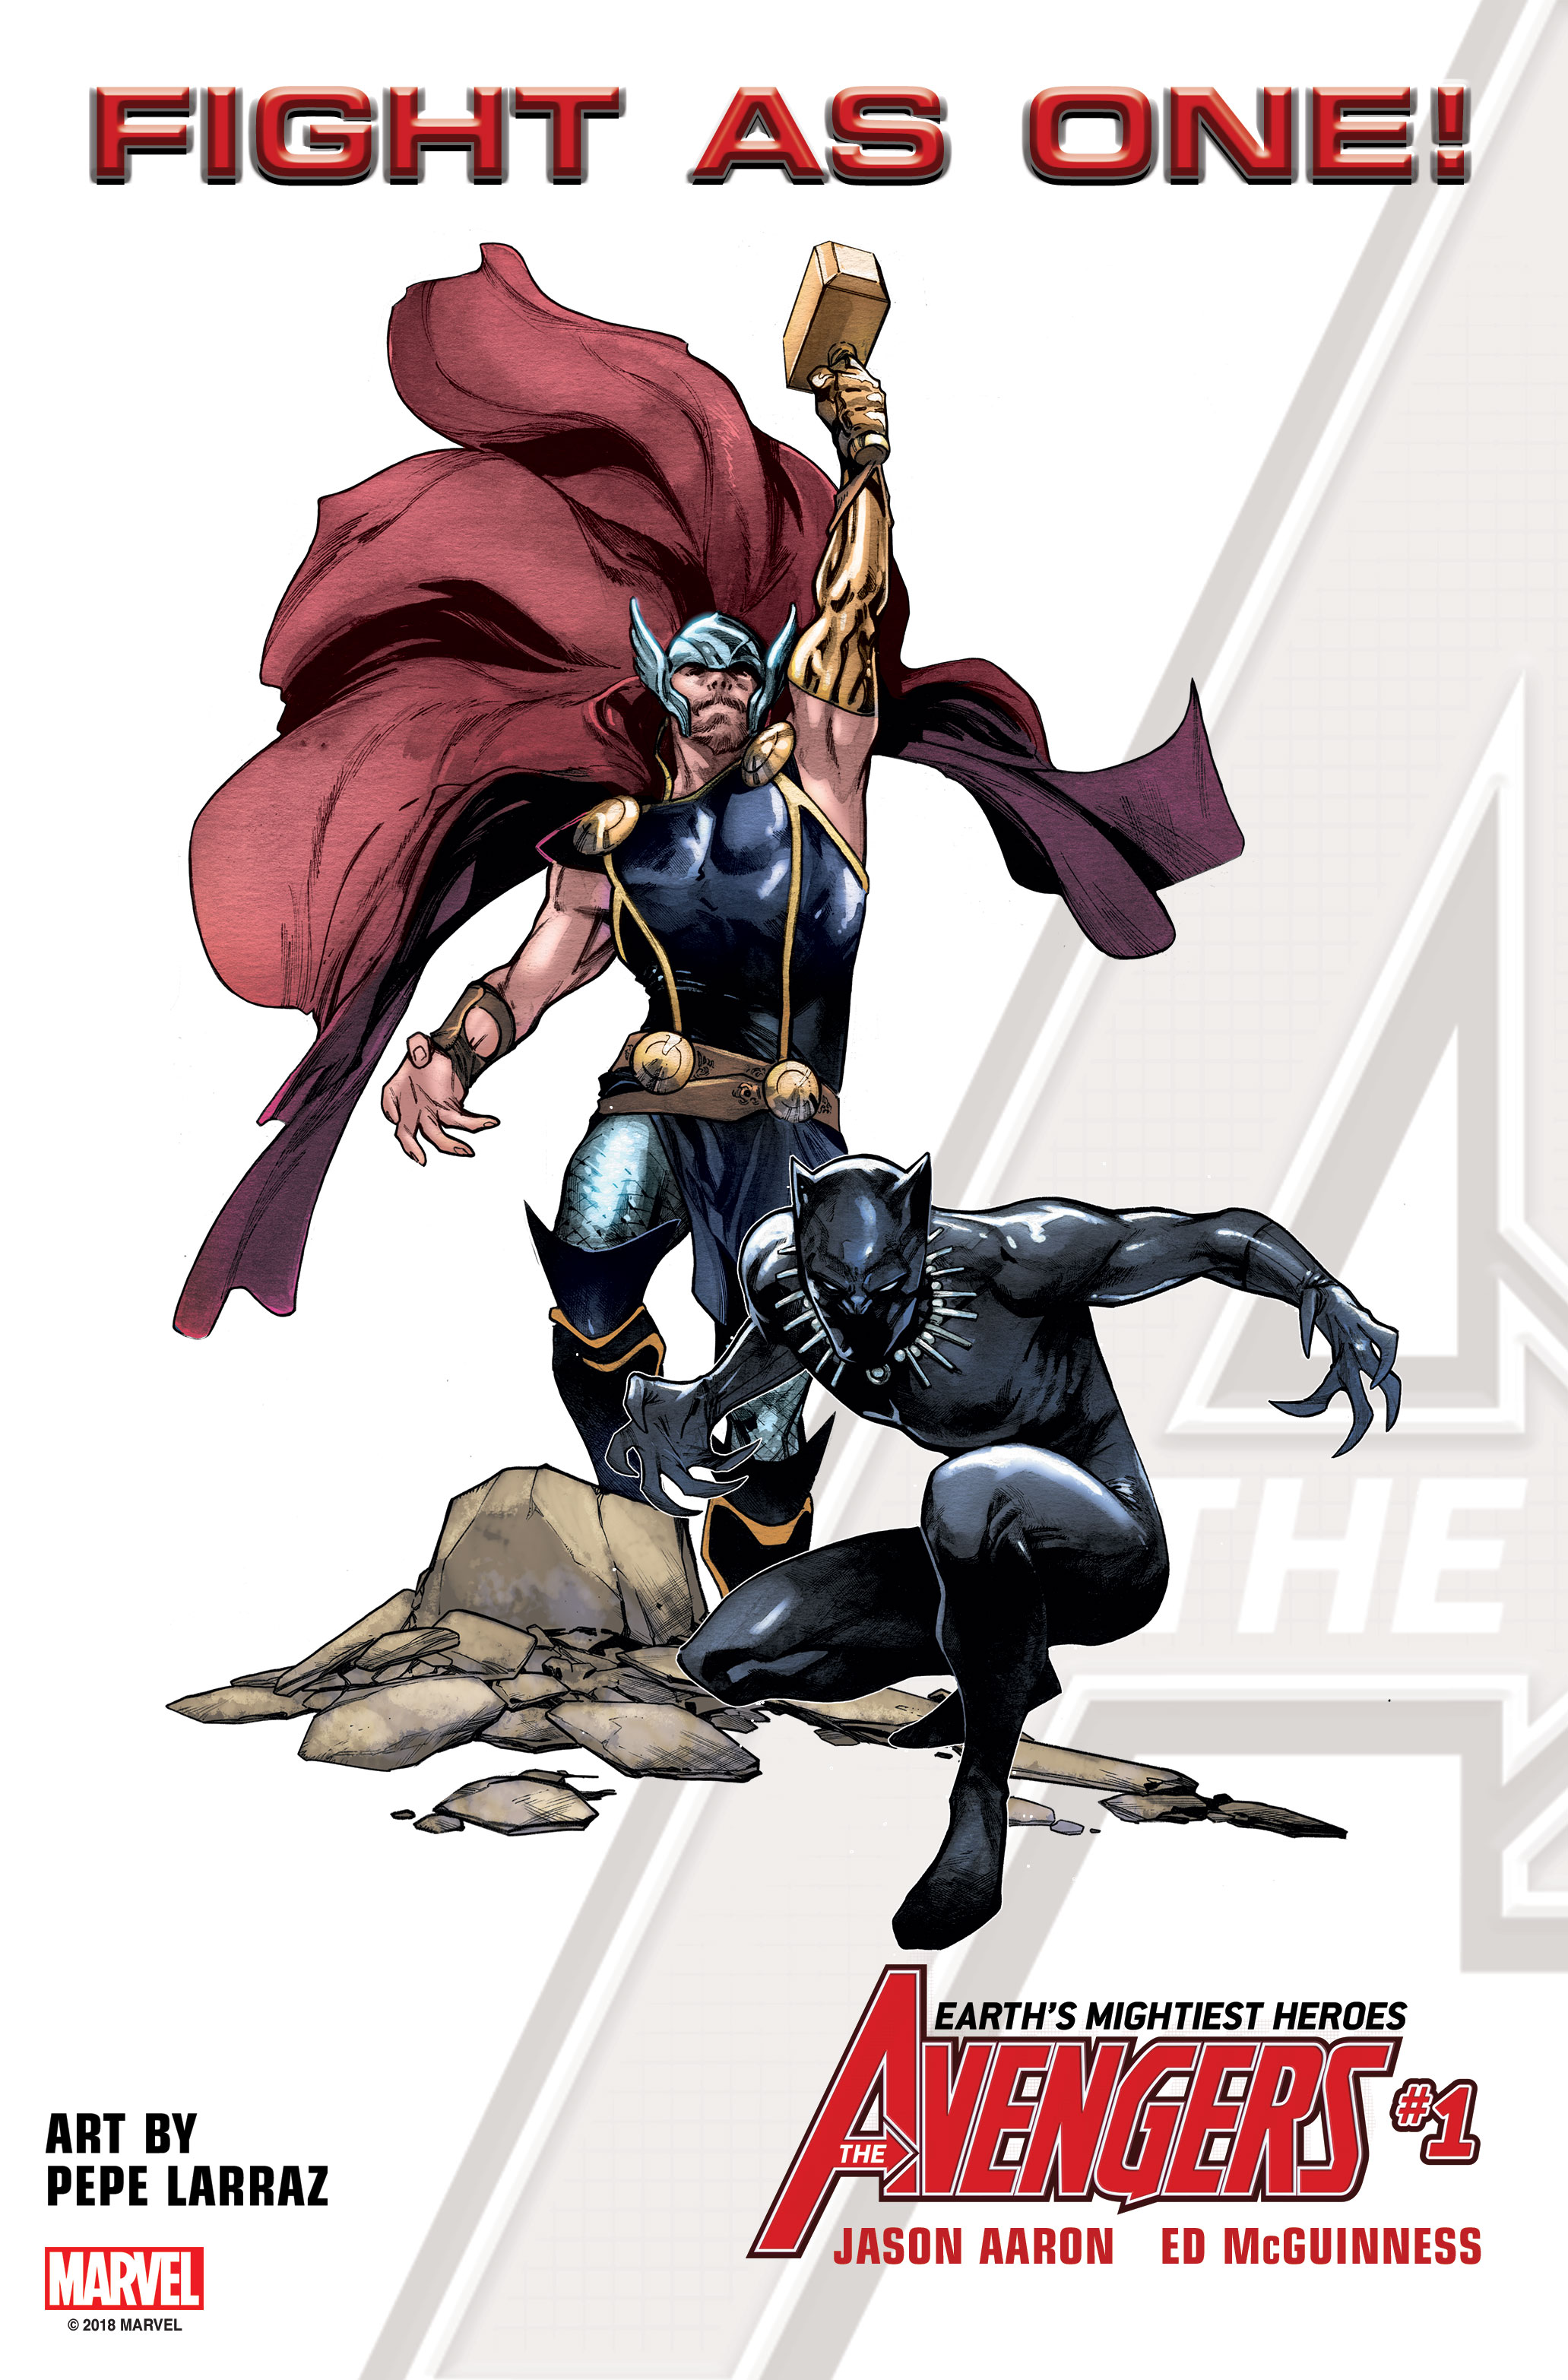 Marvel Comics reveals the new Avengers roster which includes Black Panther